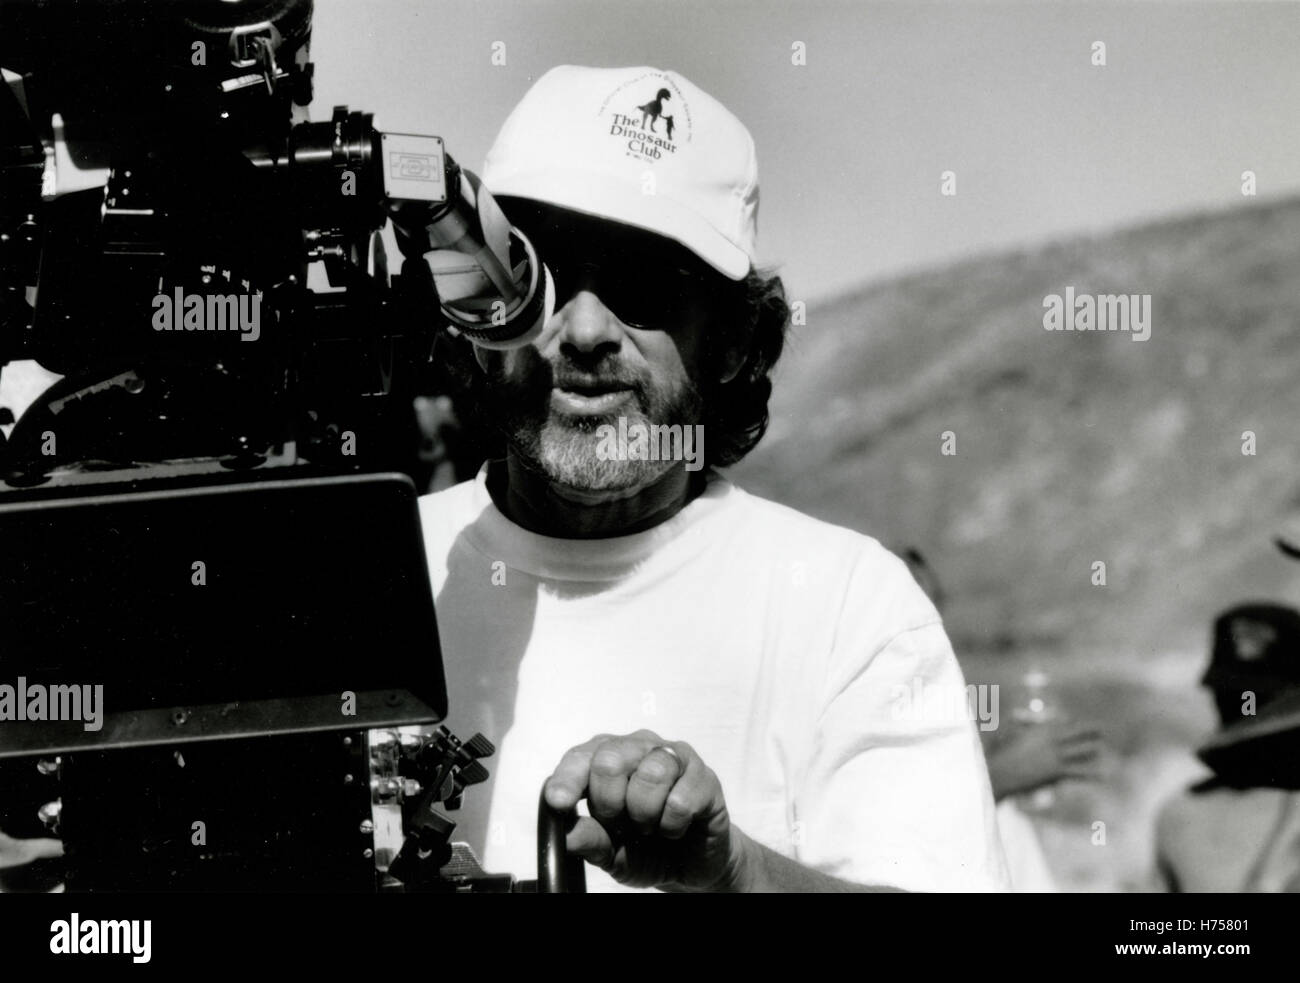 American filmmaker Steven Spielberg during the shooting of the film Jurassic Park, USA 1993 - Stock Image